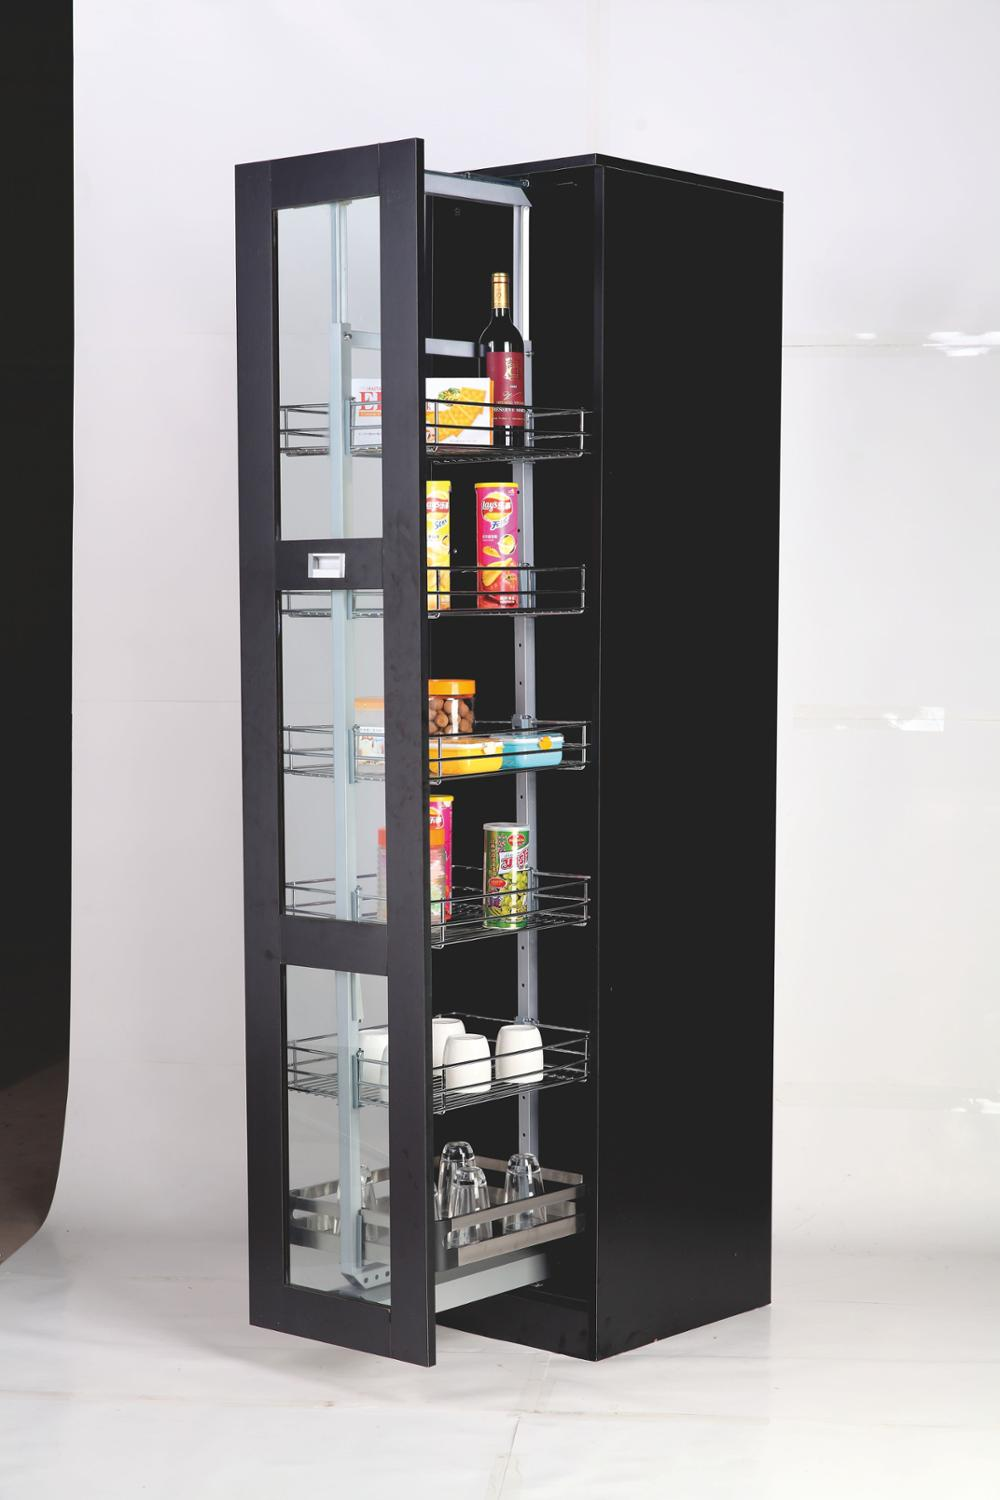 Kitchen Cabinet Soft Close 400mm Wide Pull Out Tall Larder Unit Pantry organizer